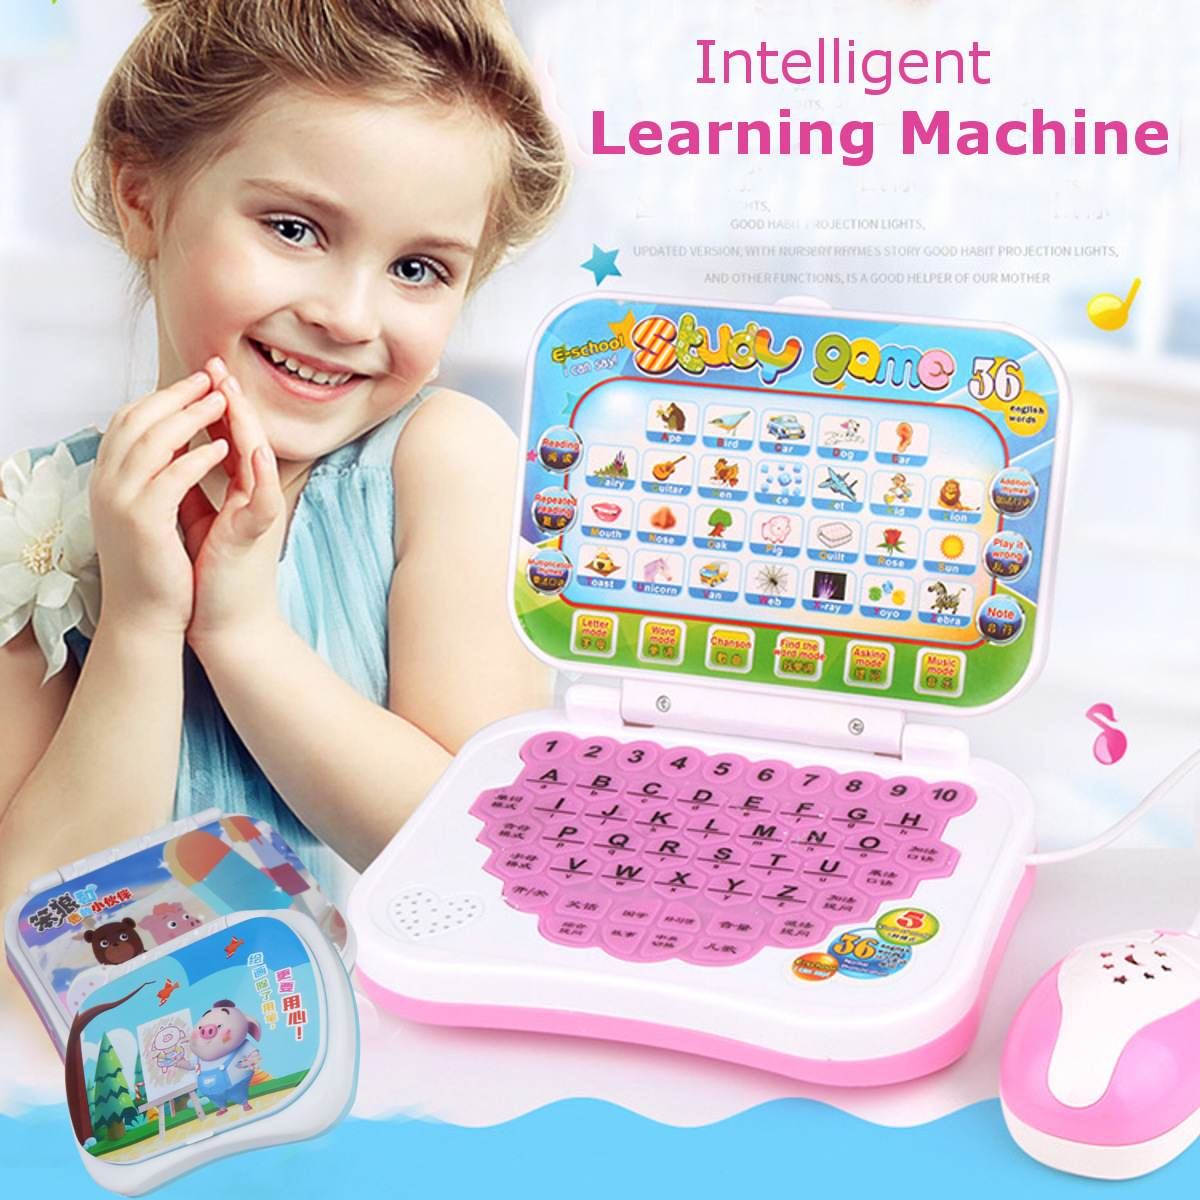 New Baby Kids Pre School Educational Learning Study <font><b>Toy</b></font> <font><b>Laptop</b></font> Computer Game Educational <font><b>Toy</b></font> image